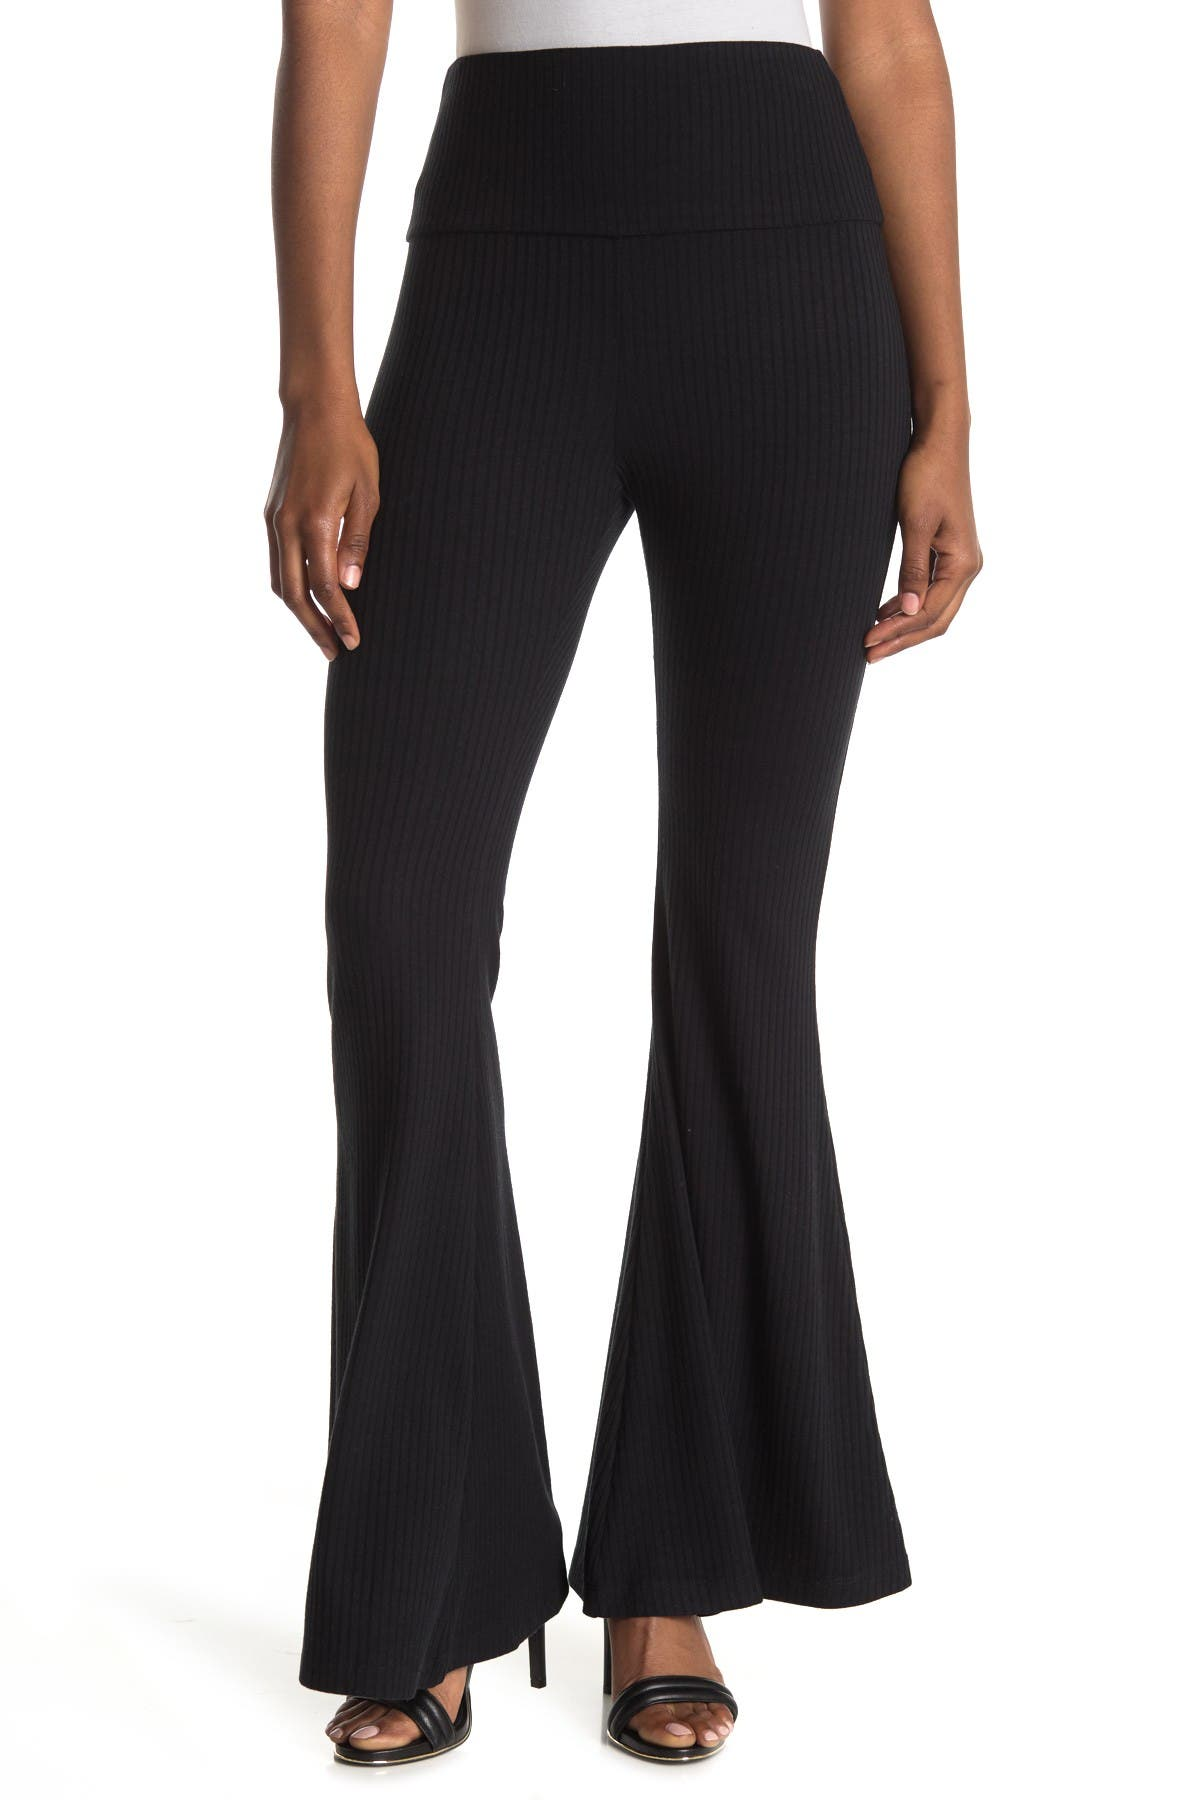 Image of Abound High Waist Ribbed Flared Leggings